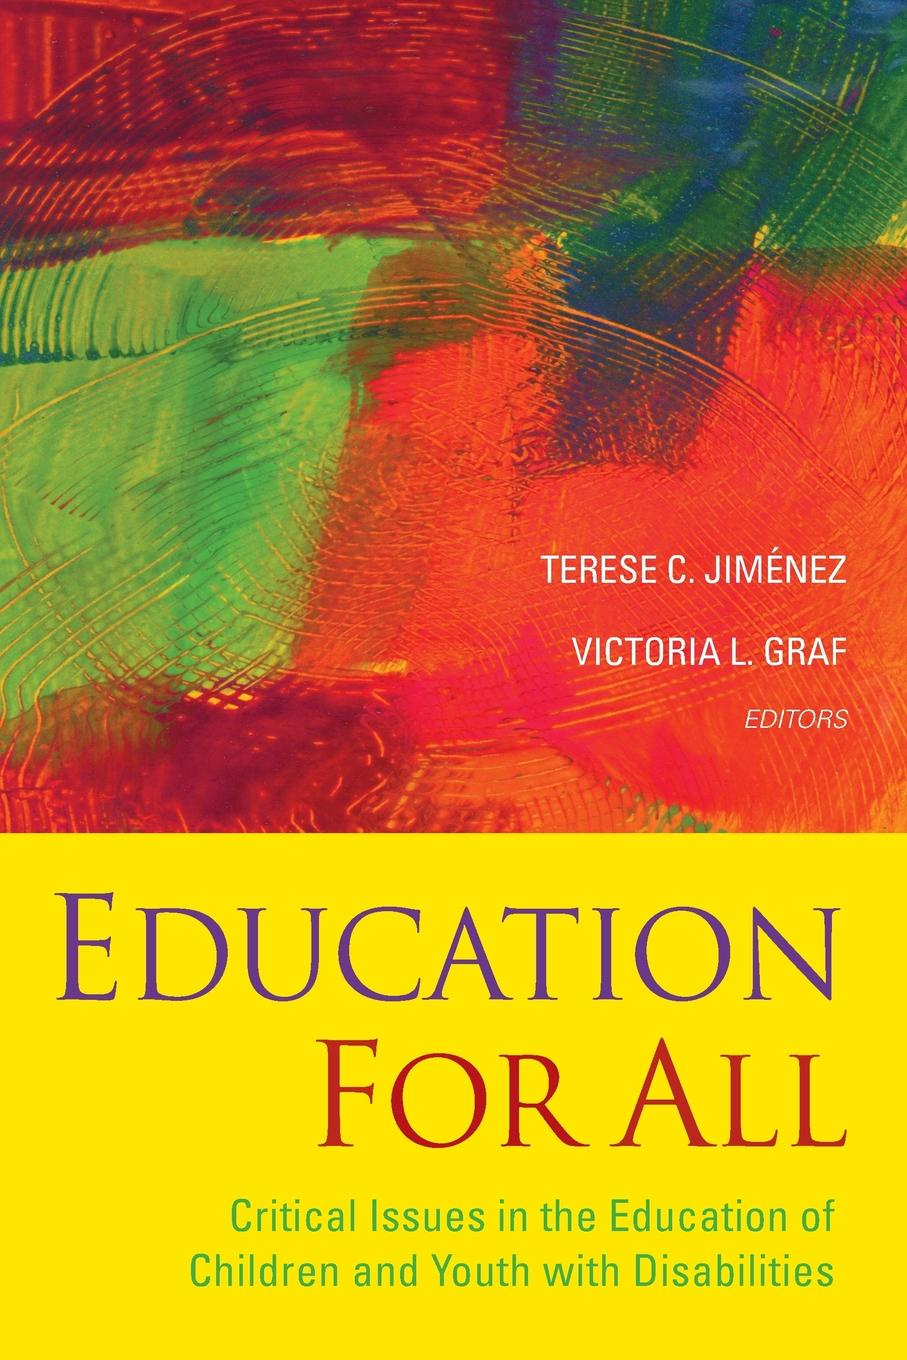 Terese C. Aceves Education for All. Critical Issues in the Education of Children and Youth with Disabilities joel kayombo education for all in tanzania achievements and shortfalls